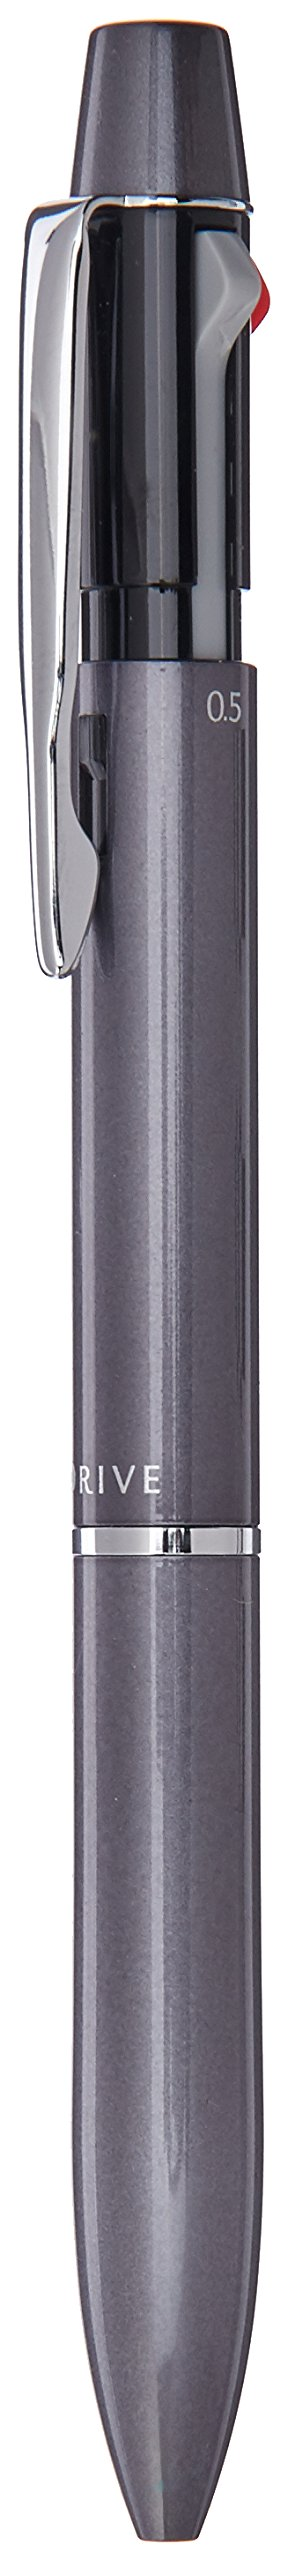 Pilot Mechanical Pencil + Ballpoint Pen, 0.7mm, Fine, Black and Red, 2+1 Acro Drive, Grey (BKHD-250R-GY) by Pilot (Image #1)